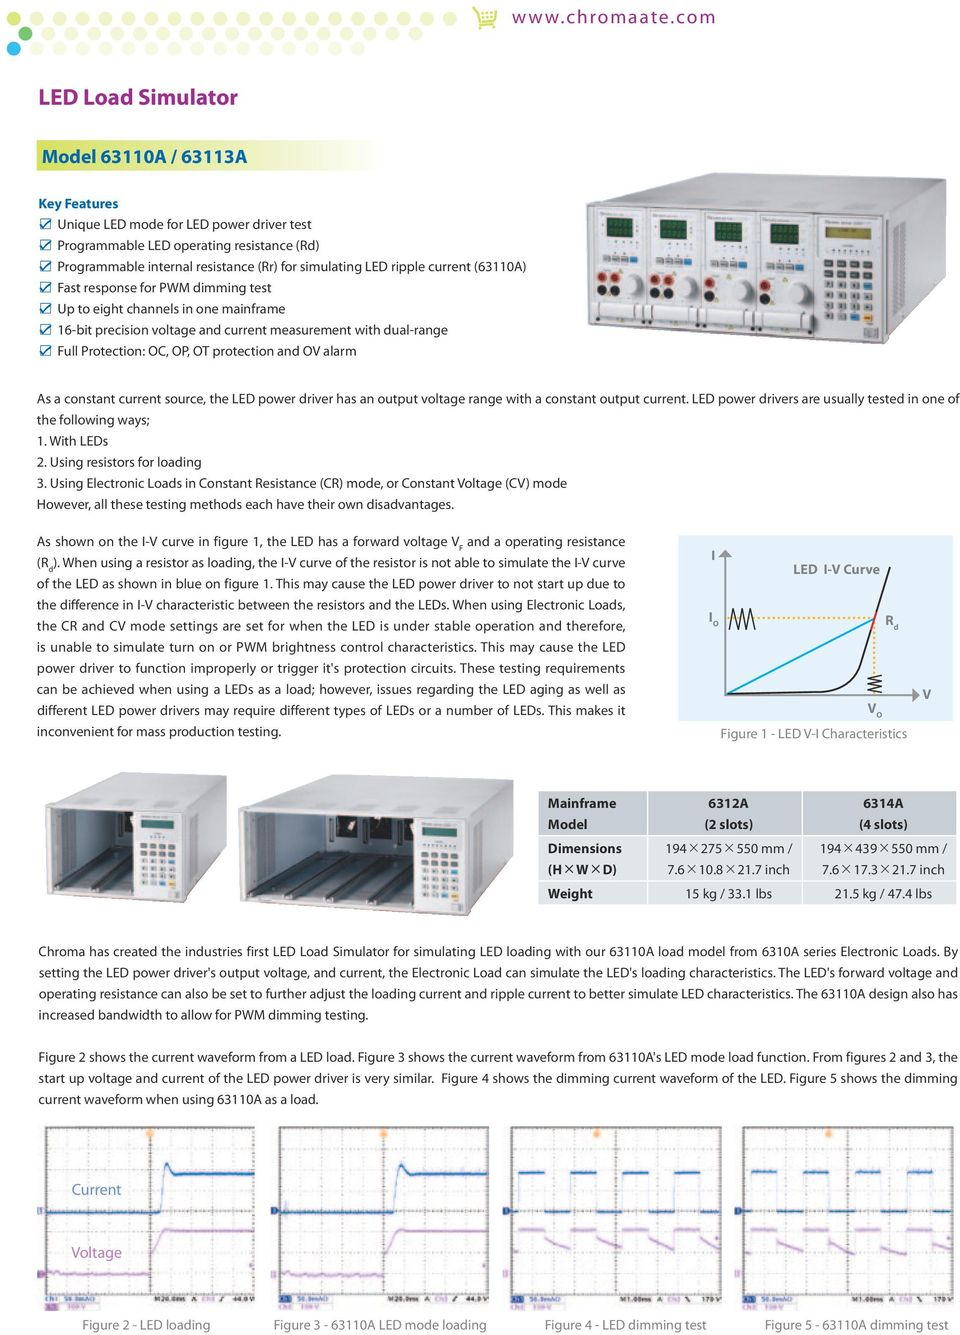 ripple current (63110A) Fast response for PWM dimming test Up to eight channels in one mainframe 16-bit precision voltage and current measurement with dual-range Full Protection: OC, OP, OT